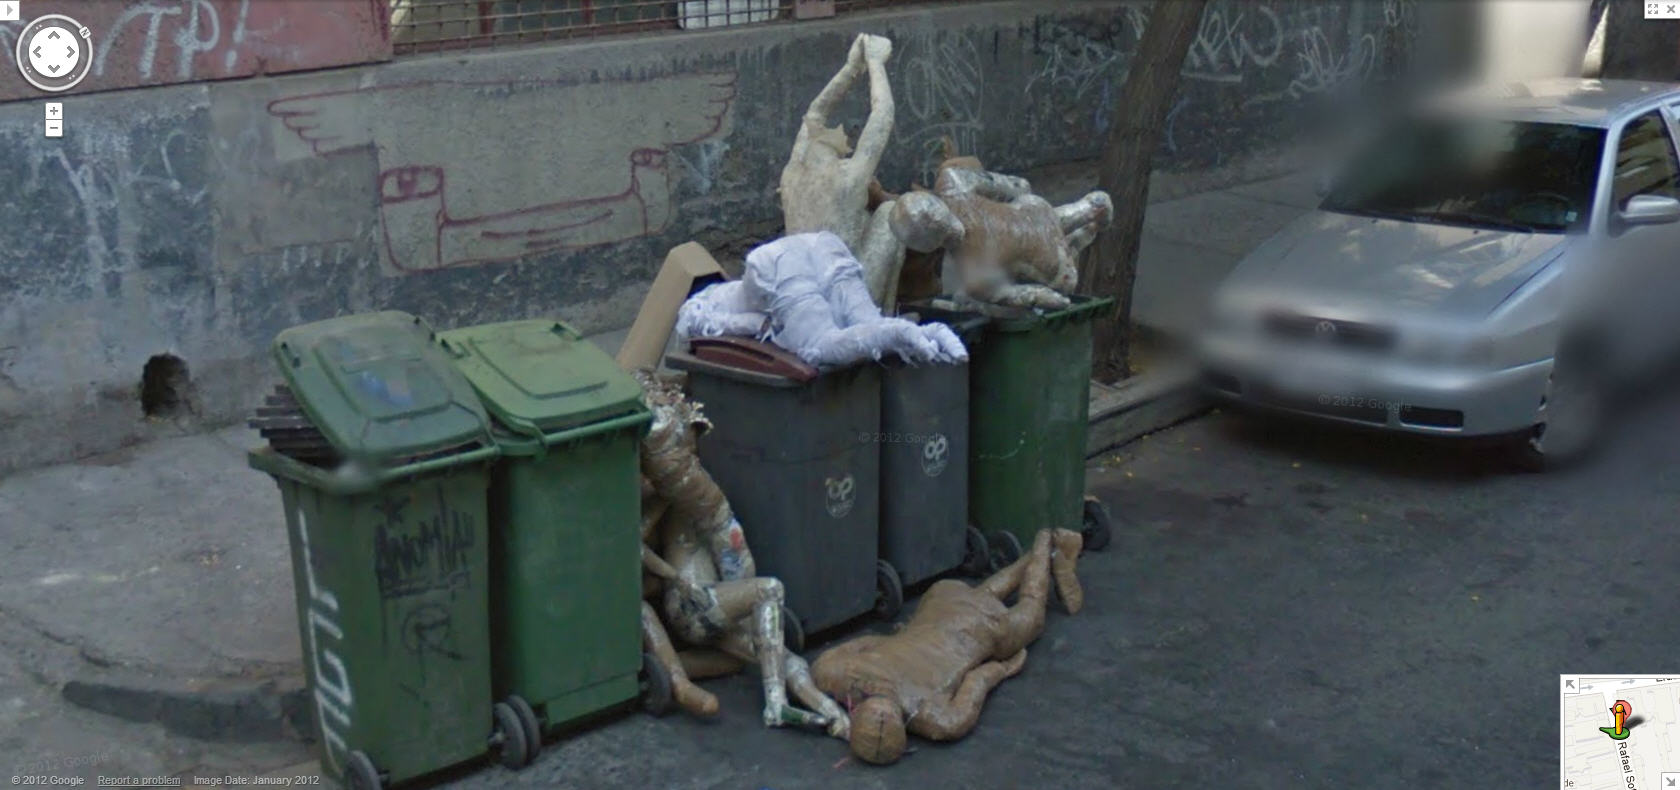 Google Street View Captures a Dumpster full of Dead Bodies in Chile